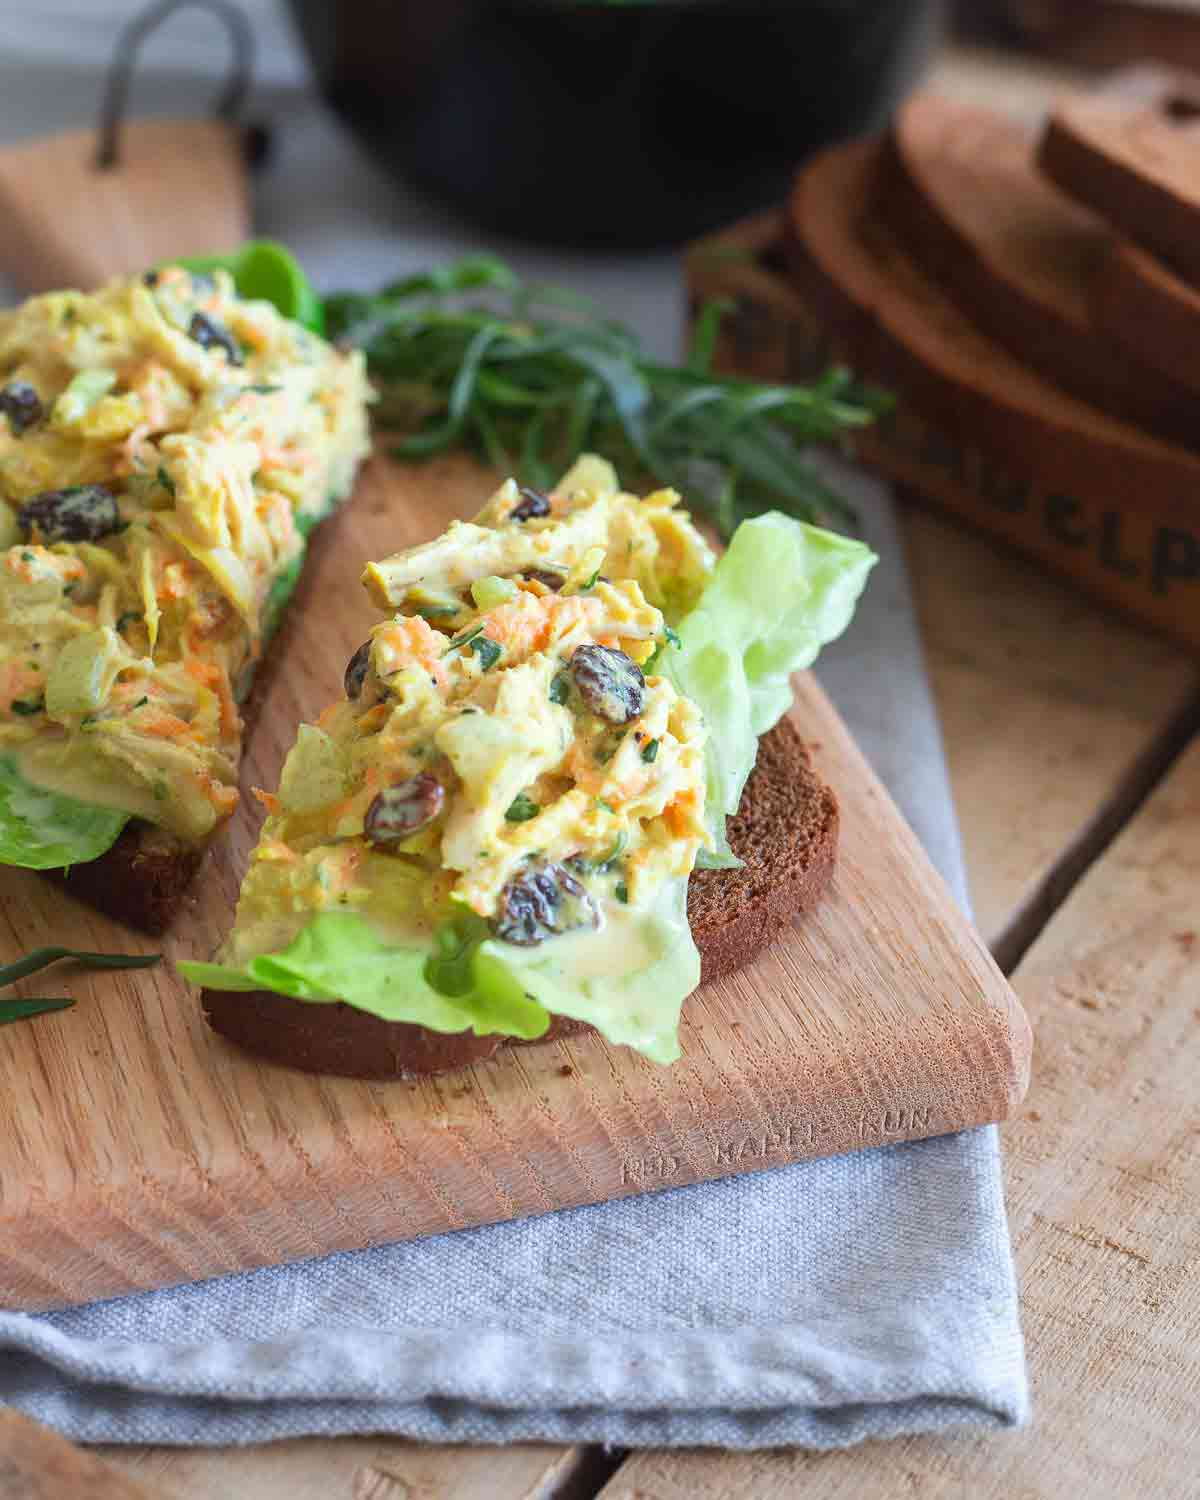 Sweet raisins and cinnamon complement savory turmeric and tarragon in this chicken salad.